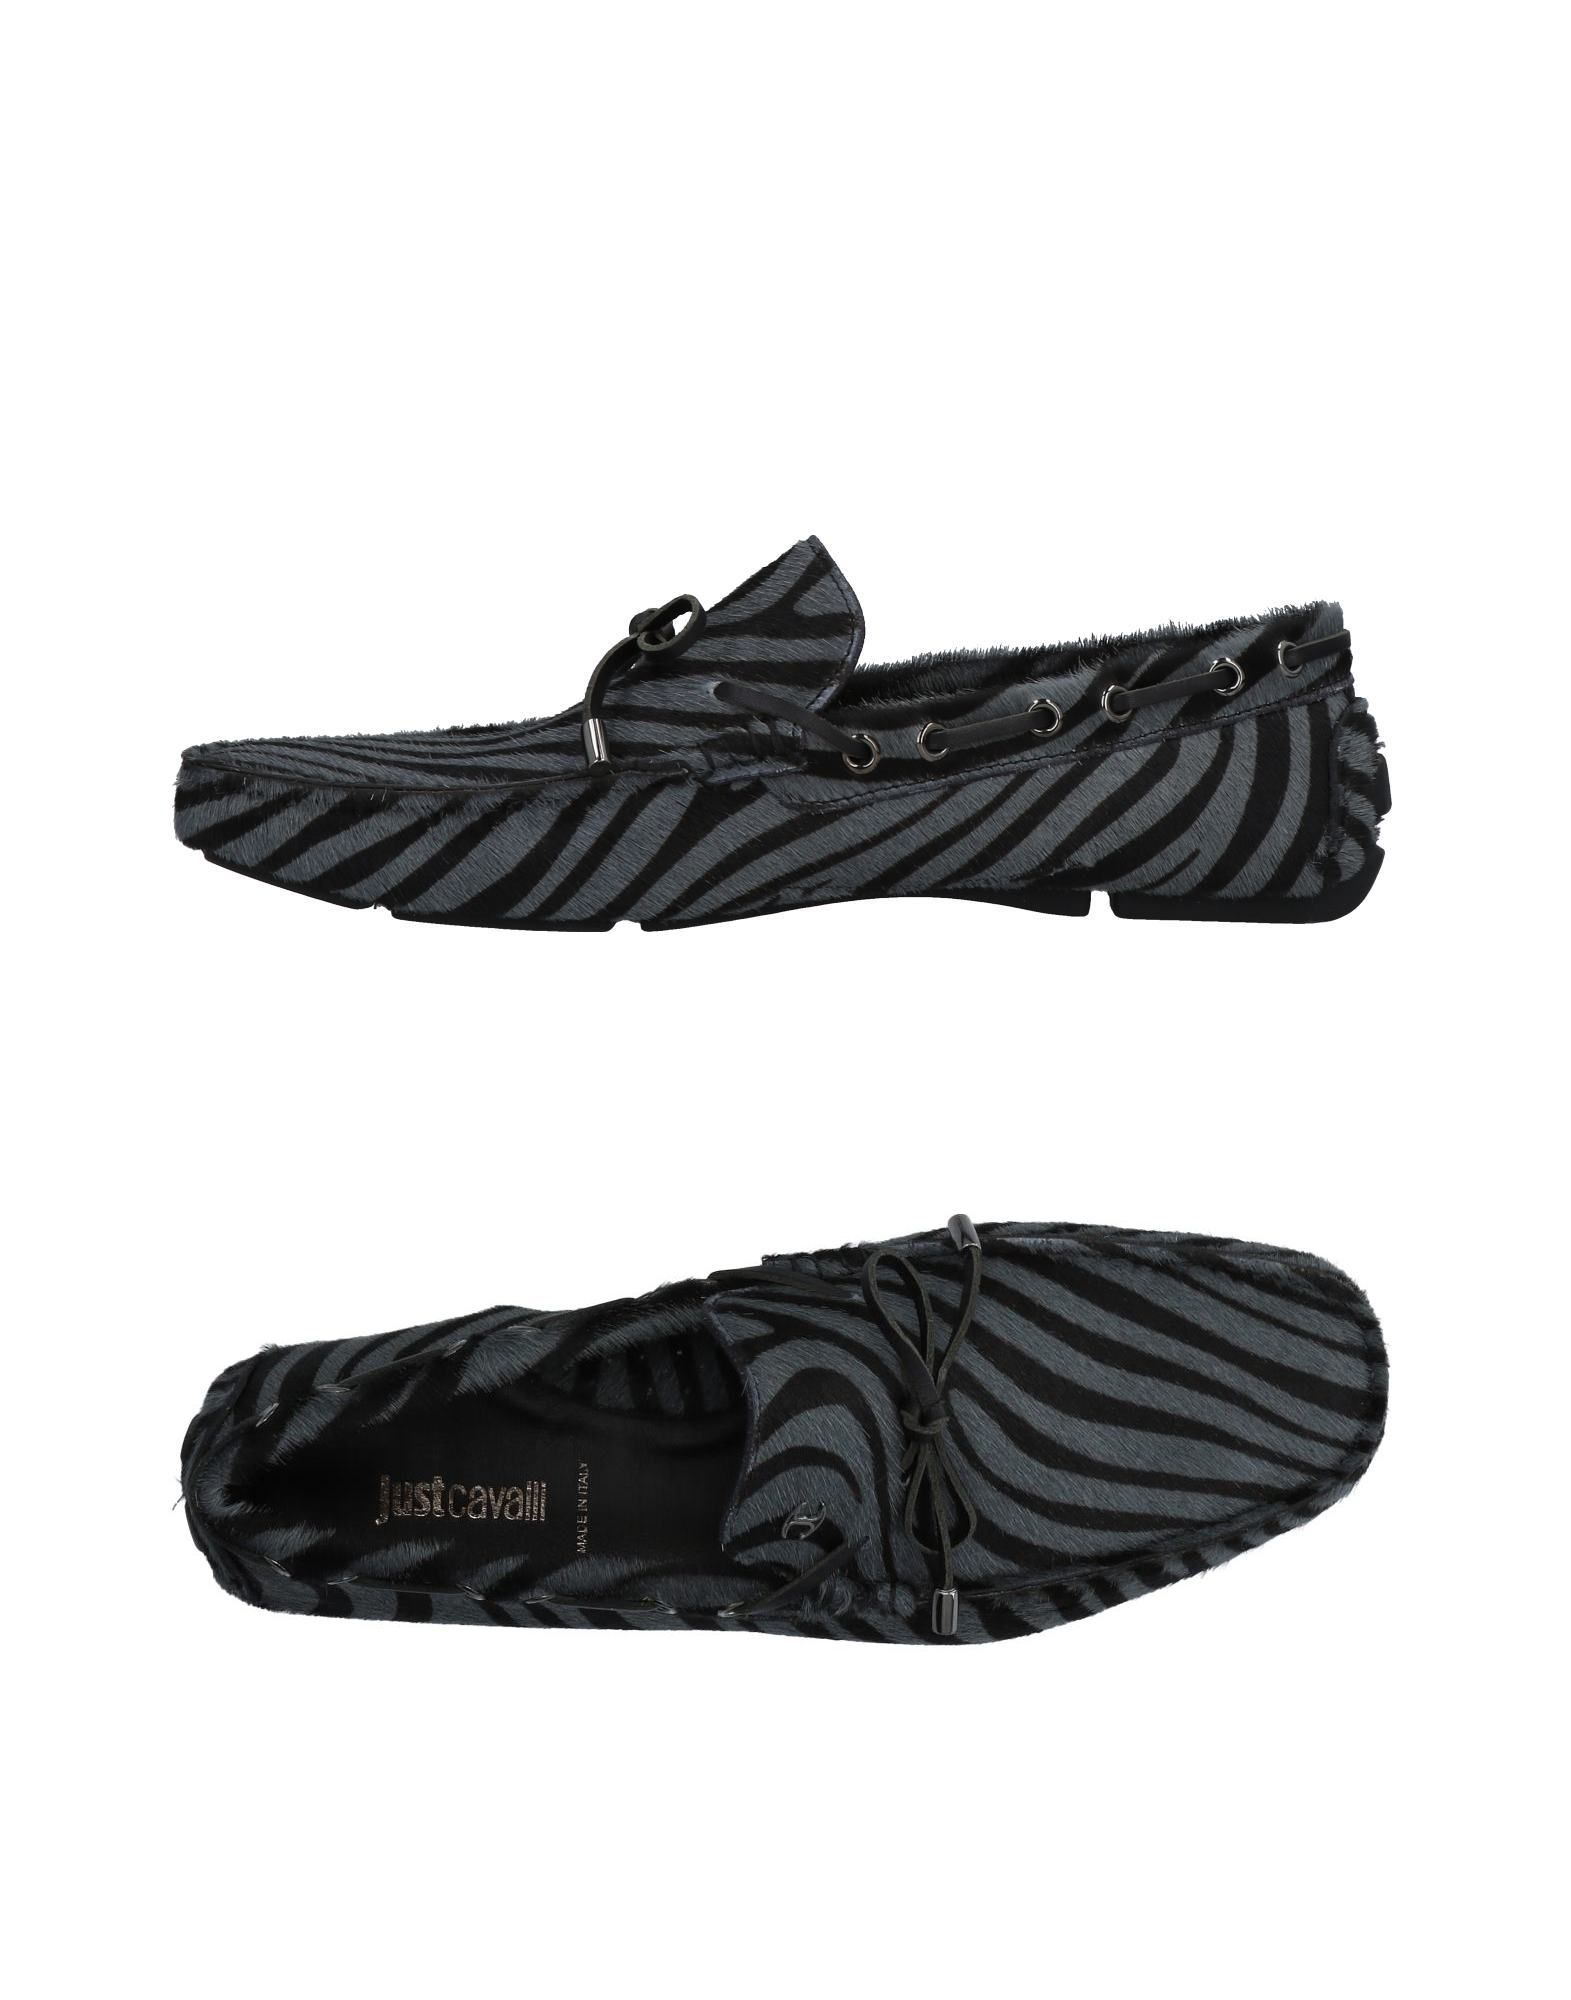 Just Cavalli Loafers - Men Just Cavalli Loafers online on 11472917CC  United Kingdom - 11472917CC on aee85a